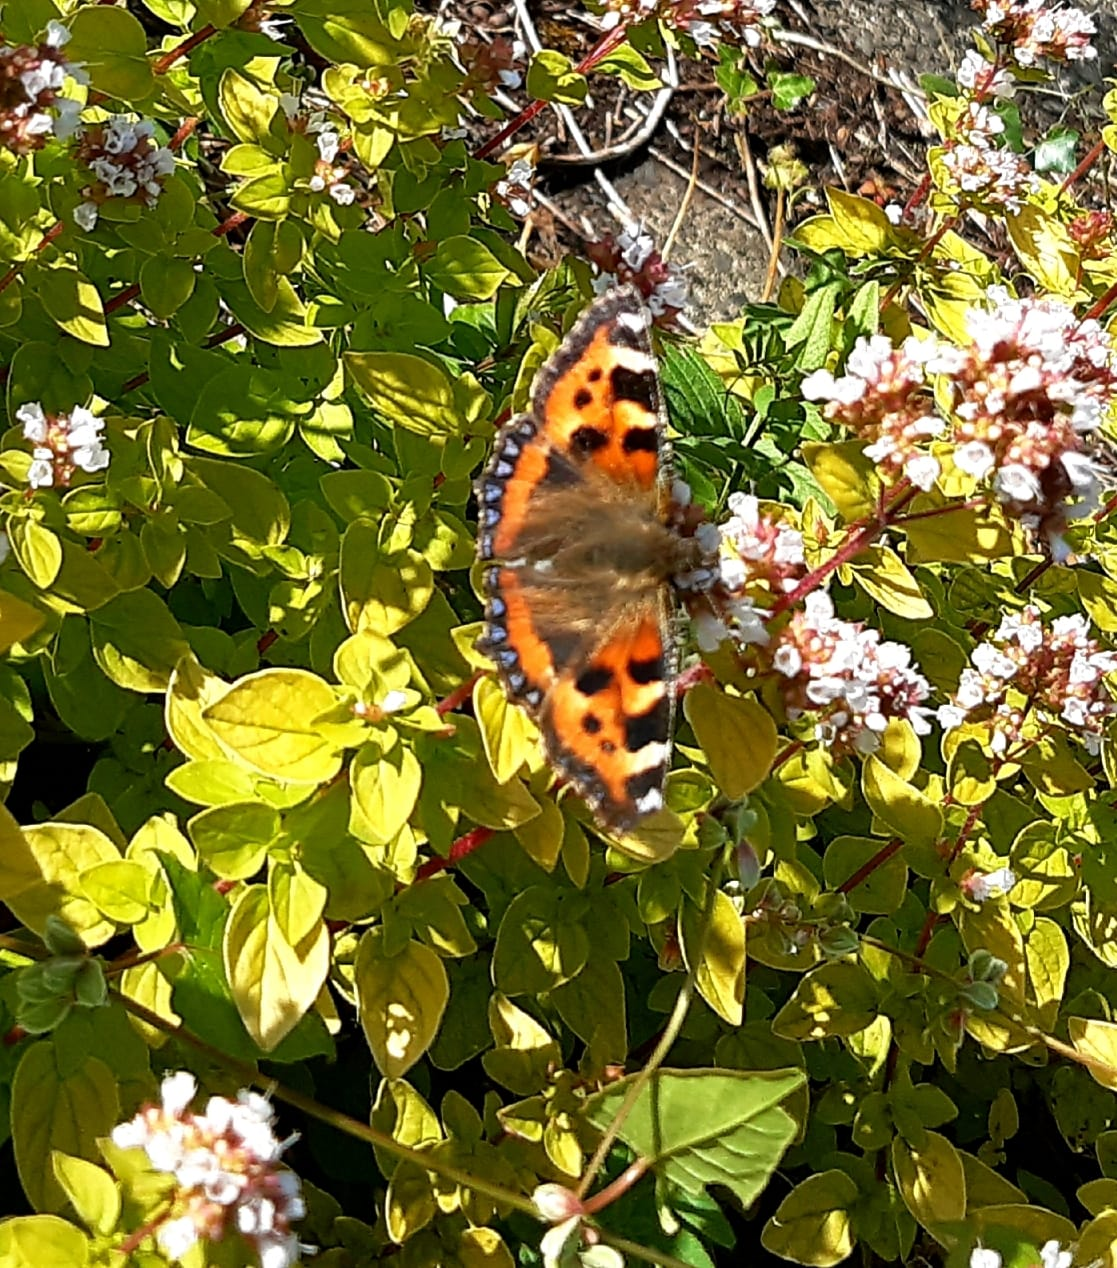 OUR GARDENS ARE ALIVE:Above, the Small Tortoiseshell